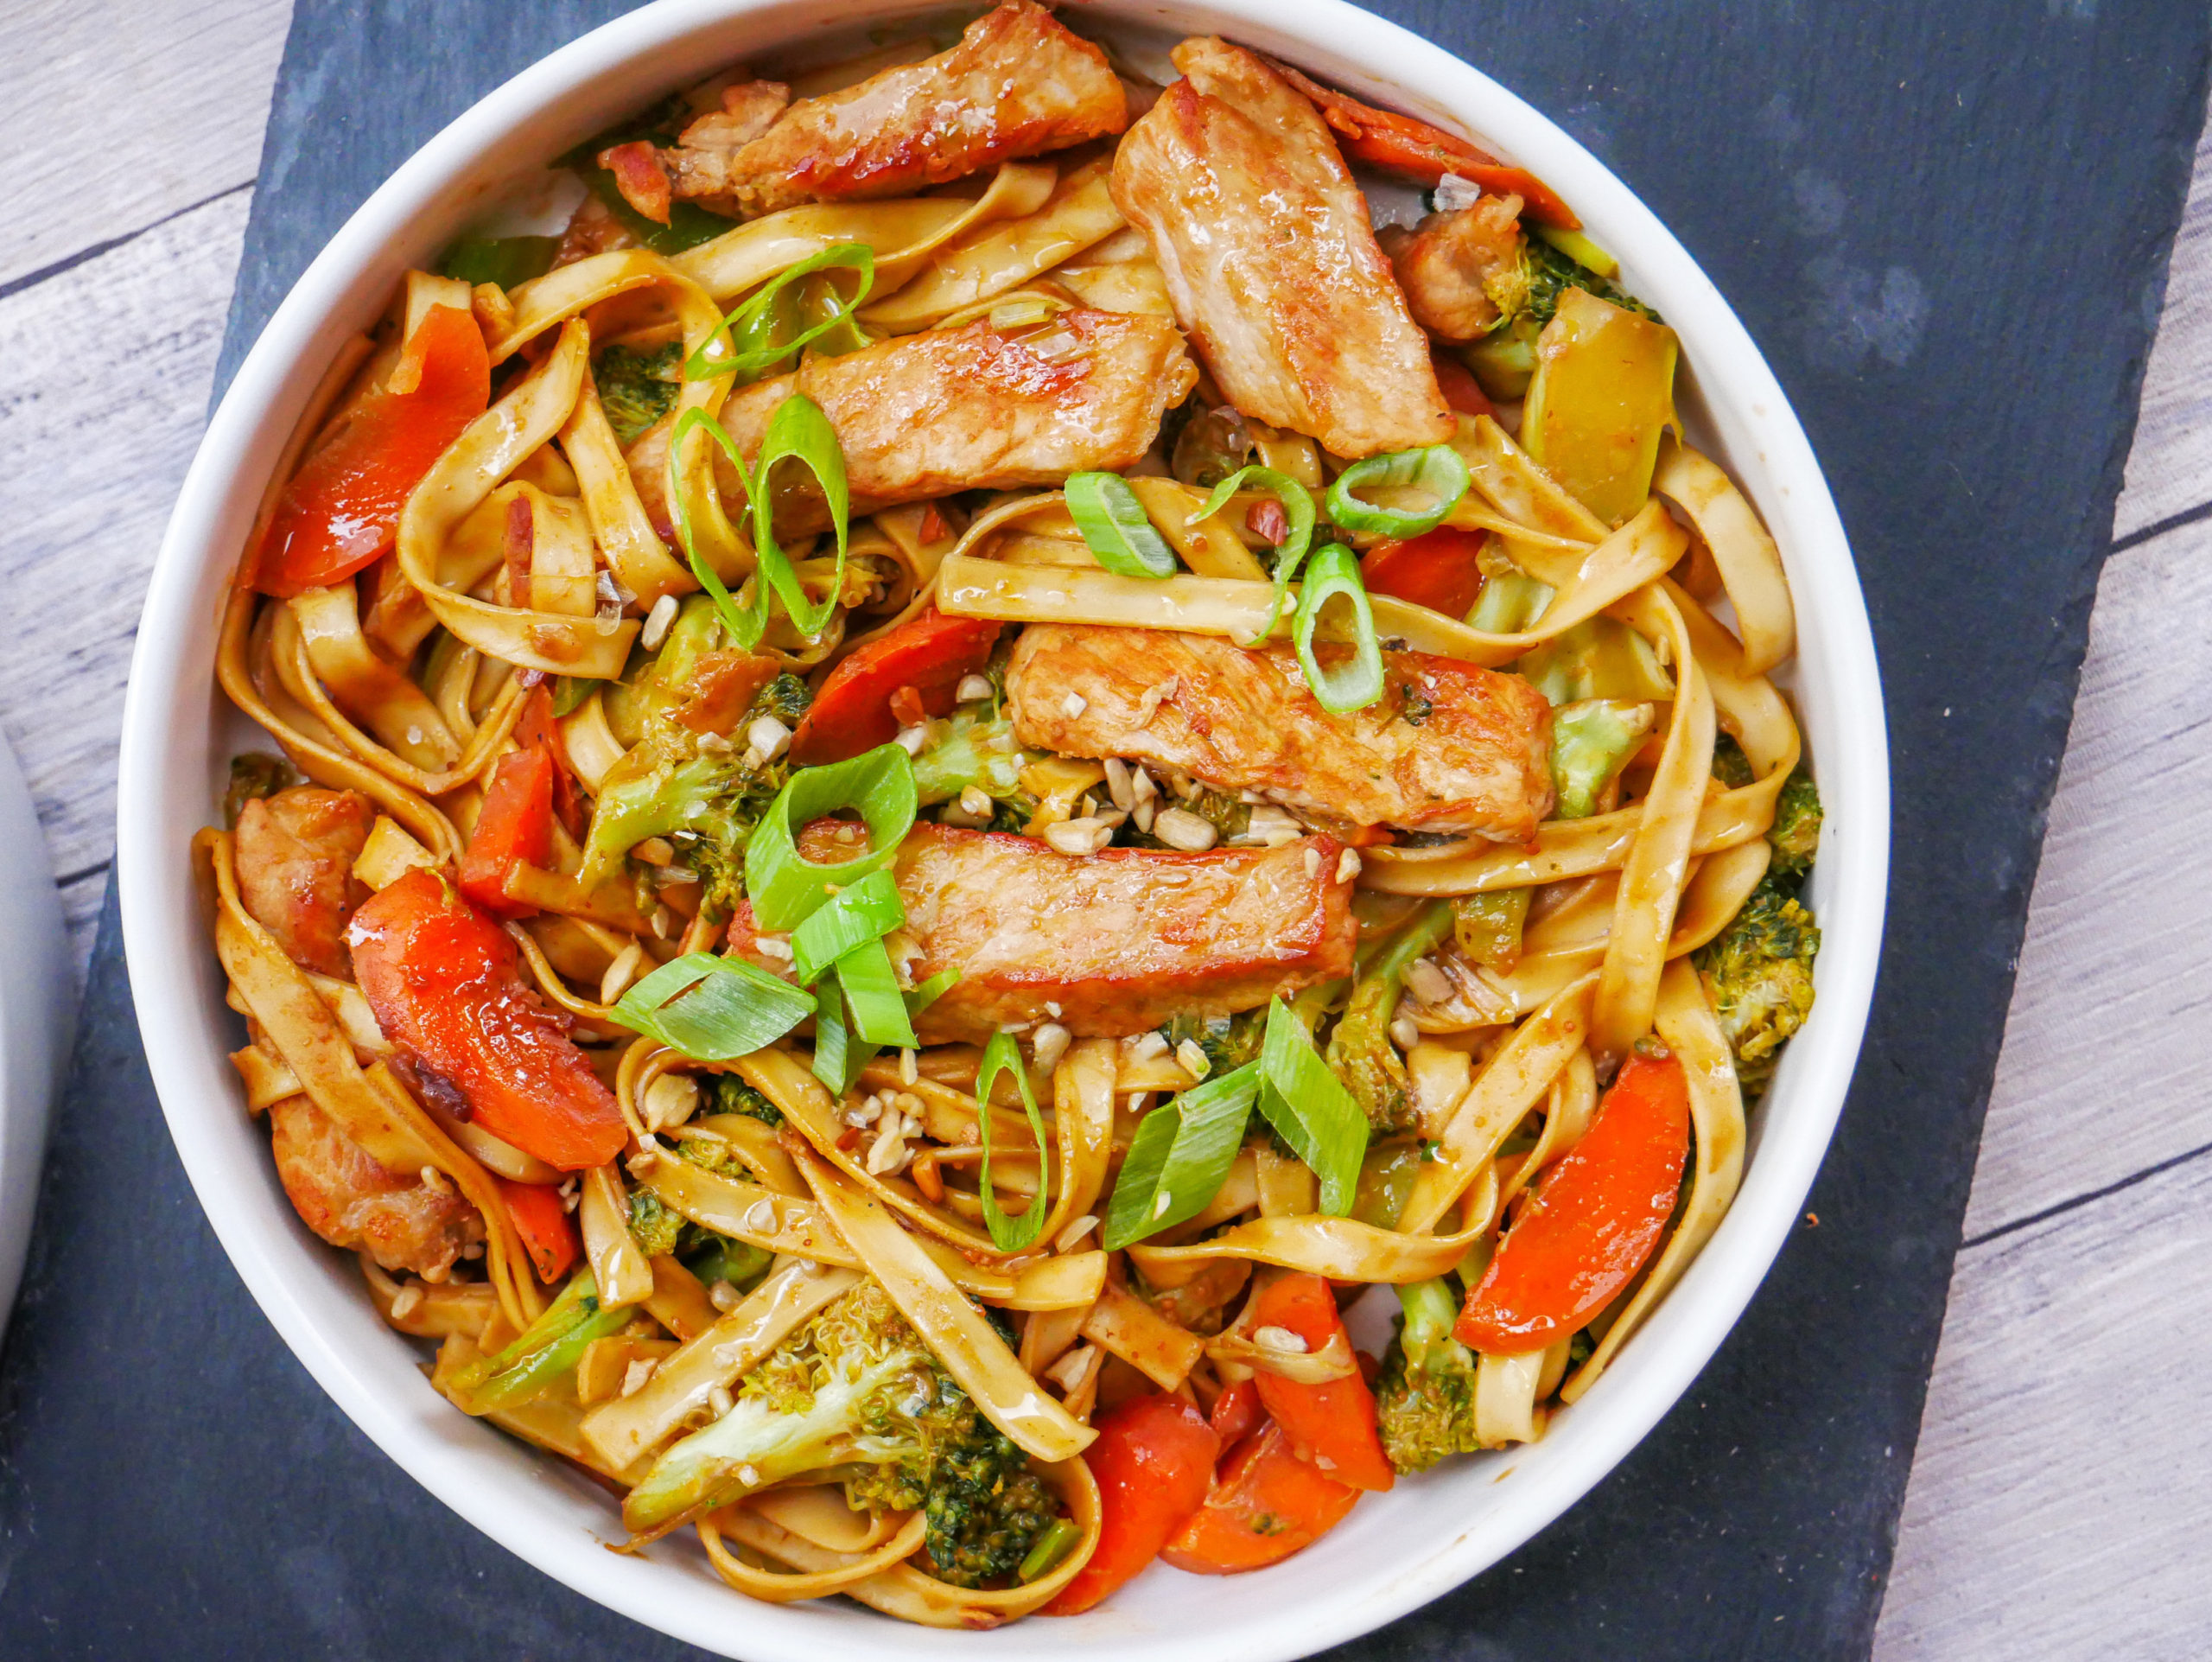 pork and noodle stir fry in a savory peanut sauce